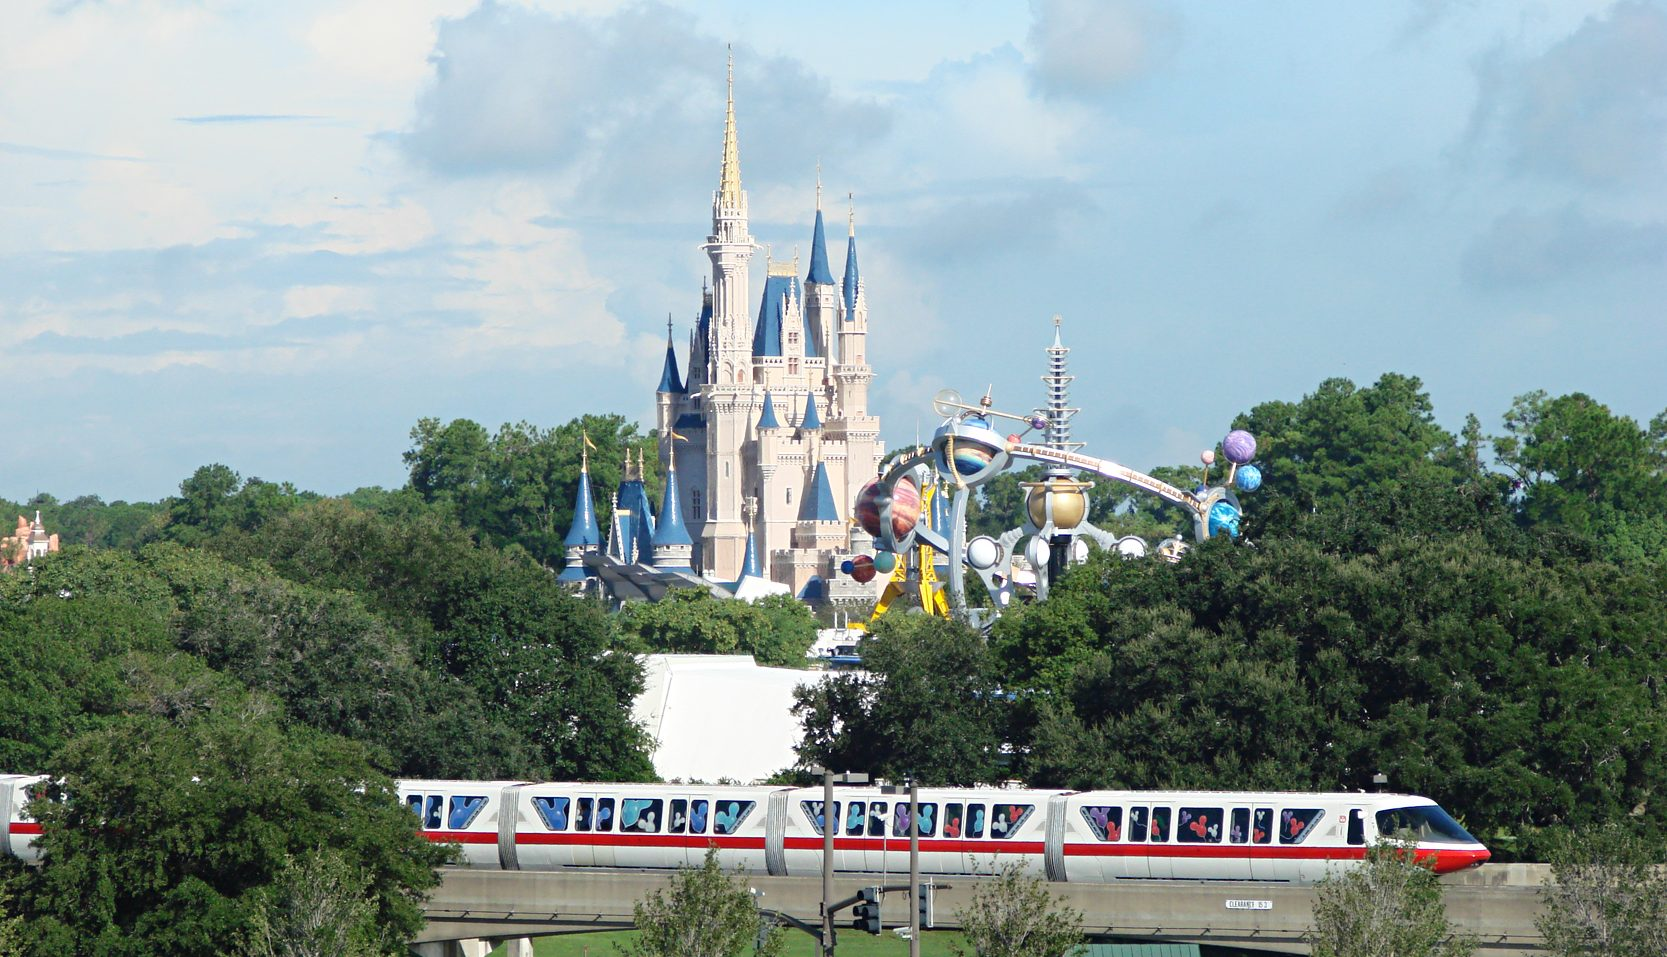 Should I Purchase Travel Insurance for My Trip to Walt Disney World?